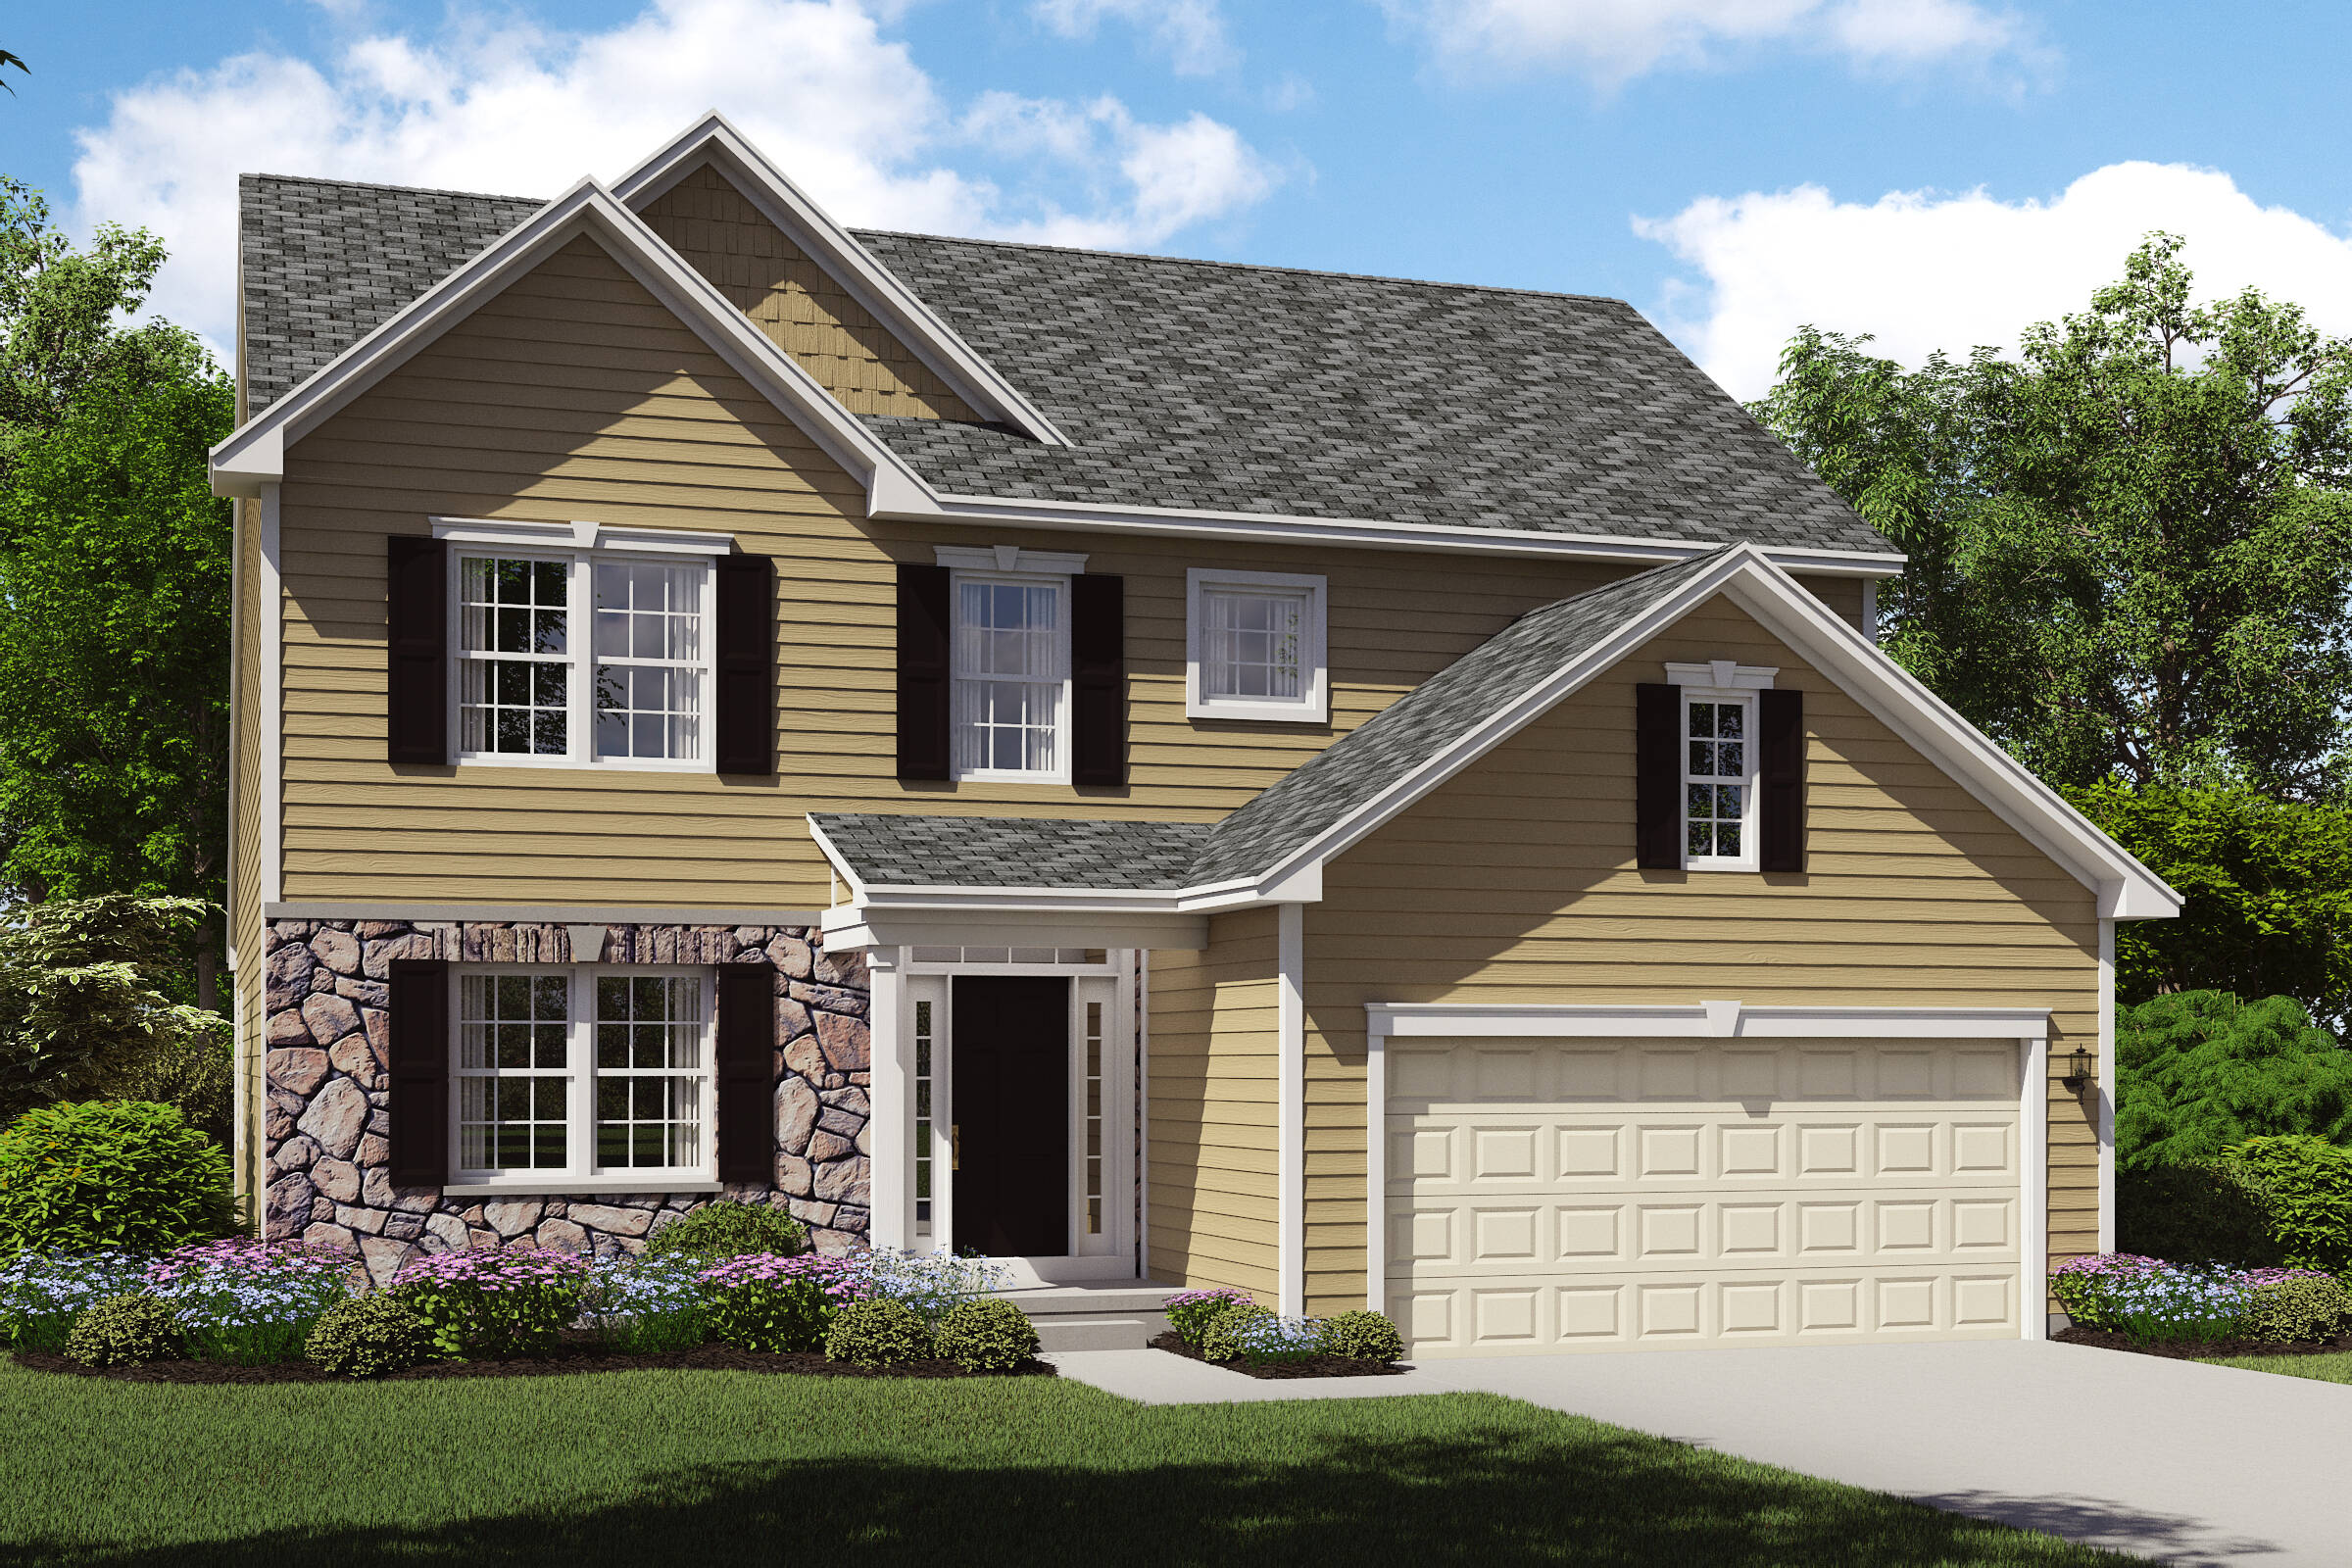 stone exterior first floor owners suite oakridge b northeast ohio